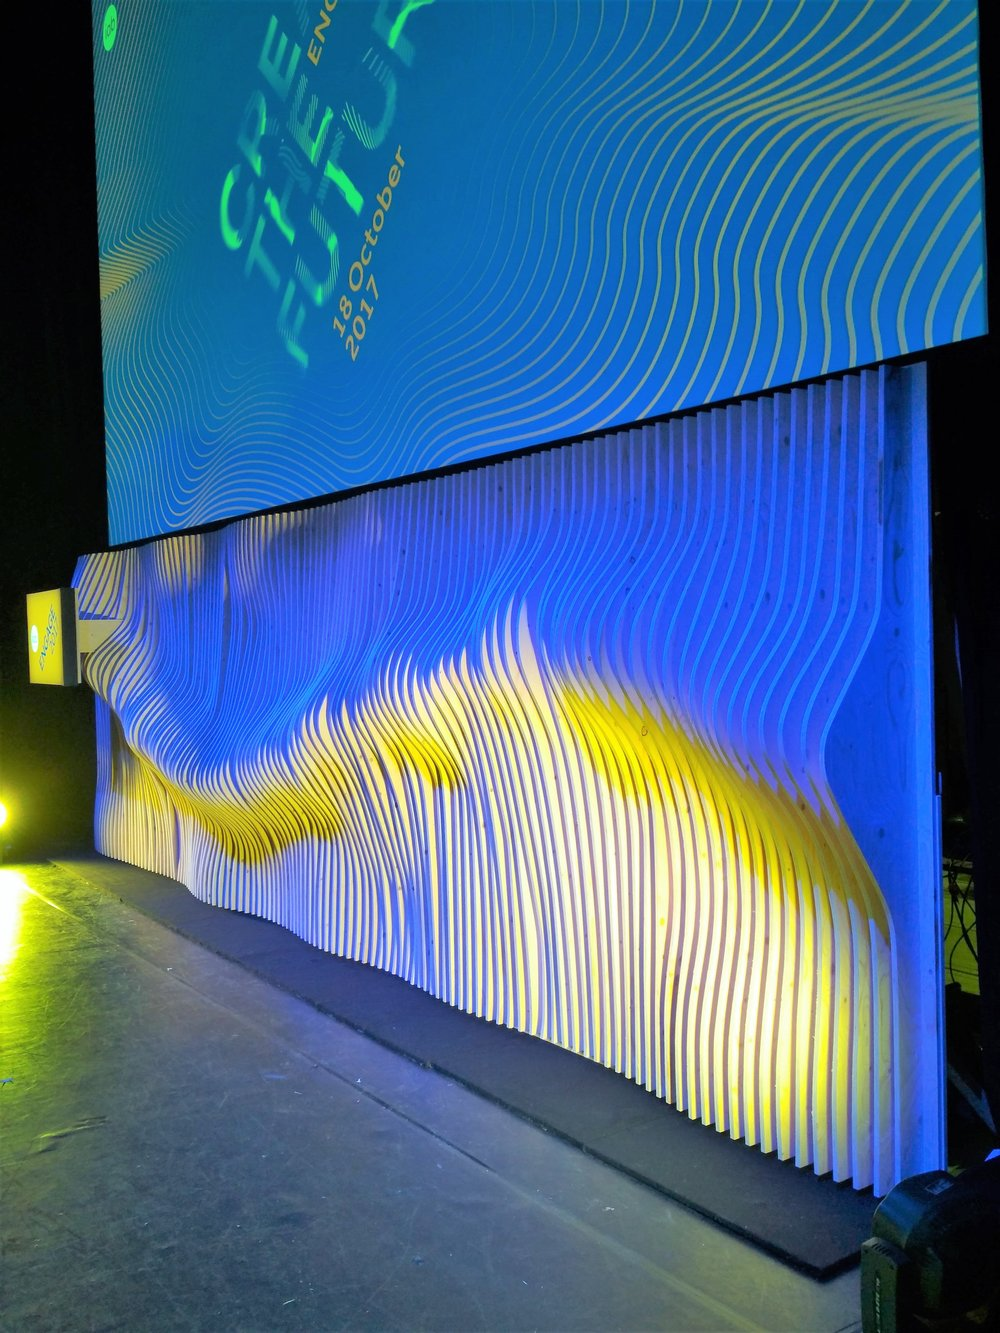 IAB Engage 2017 stage backdrop made from 127 piece of cut plywood using a CNC machine.